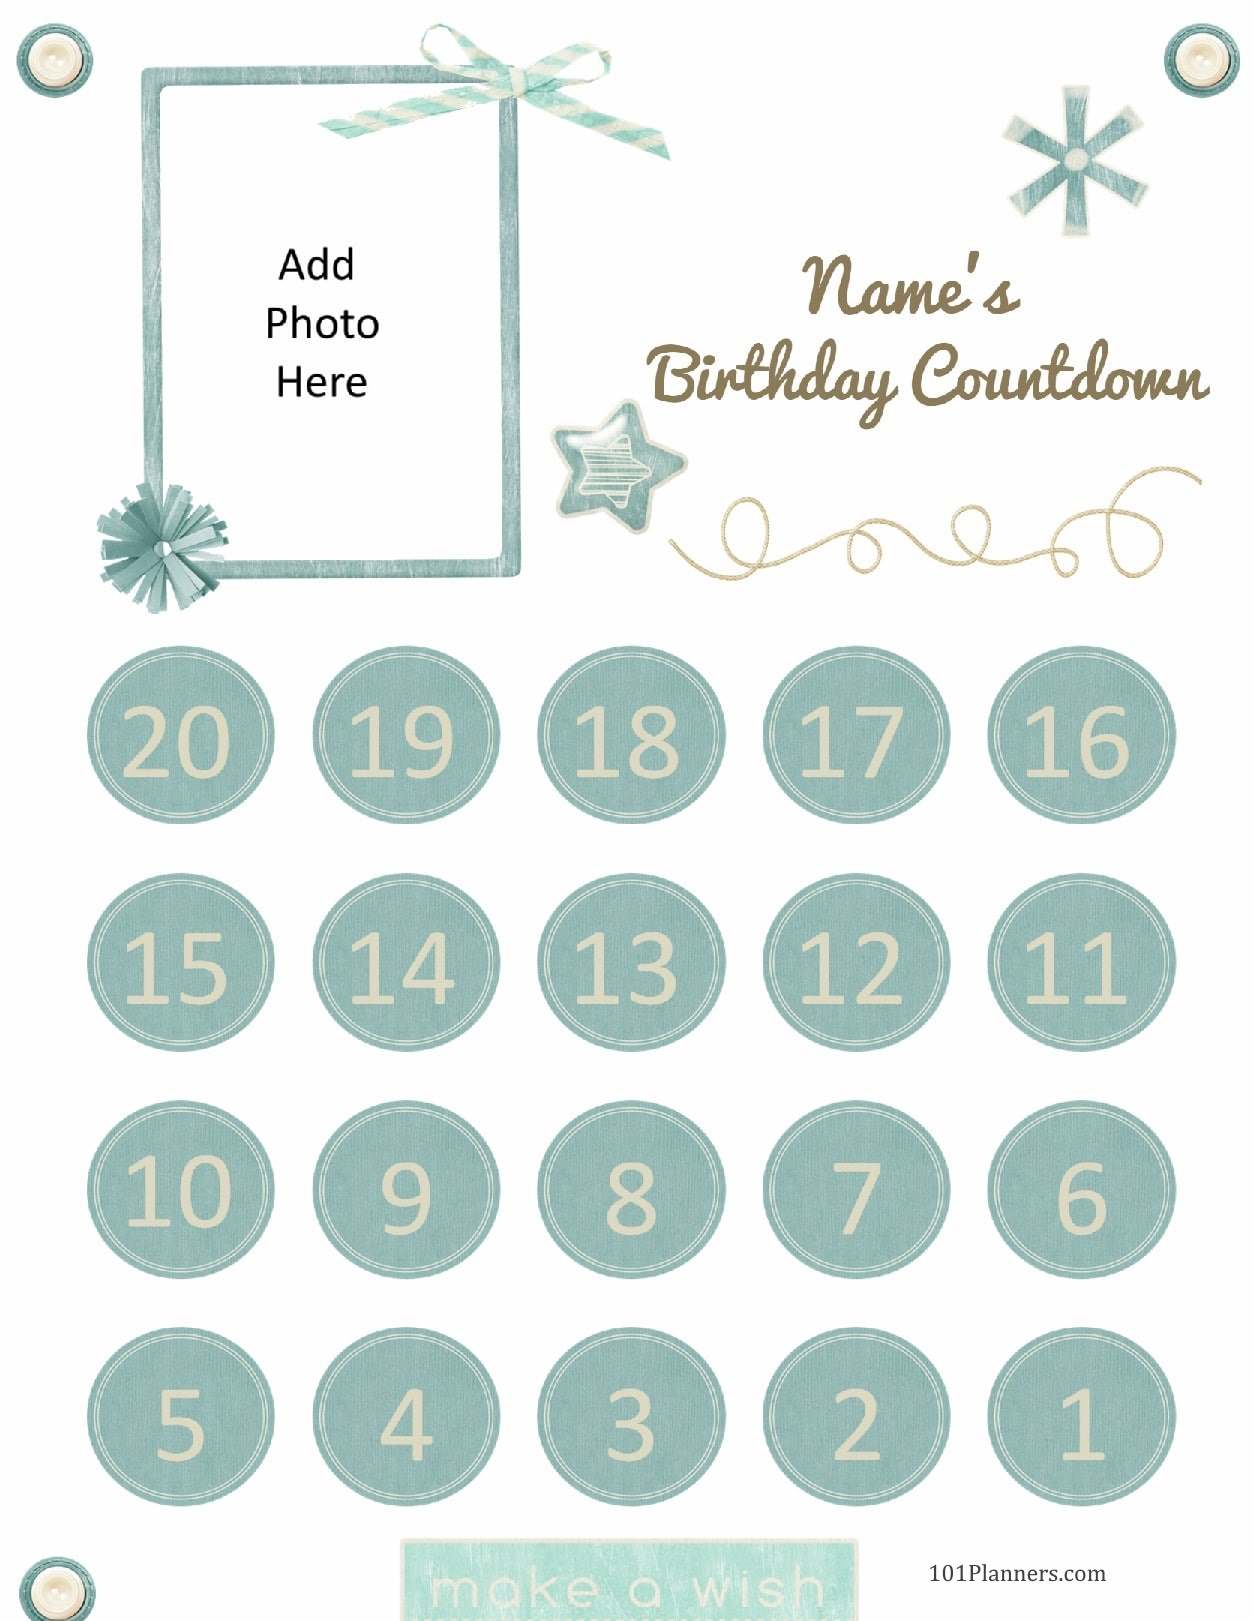 image relating to Countdown Calendar Printable referred to as No cost Printable Birthday Countdown Customise On the net